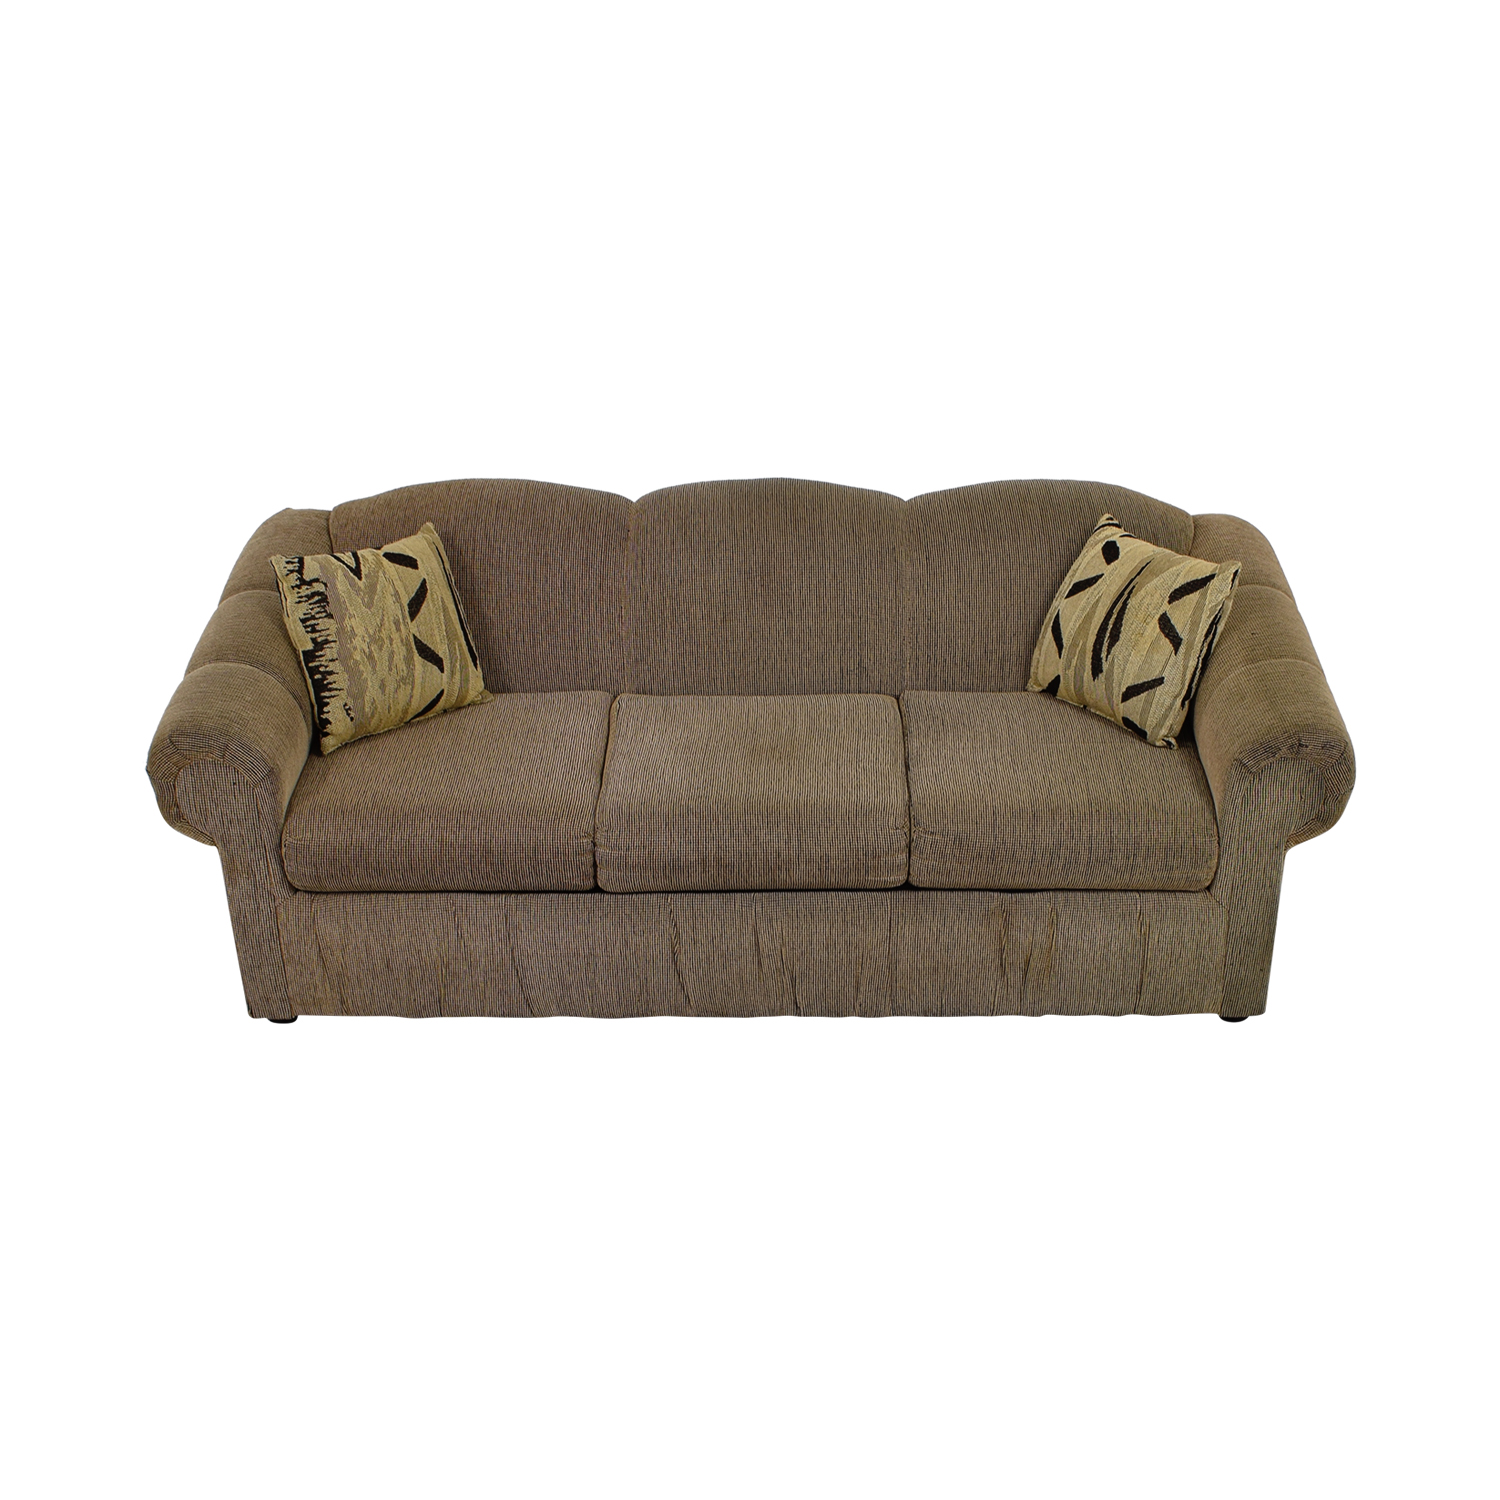 Unkown Tan Three-Cushion Sofa on sale